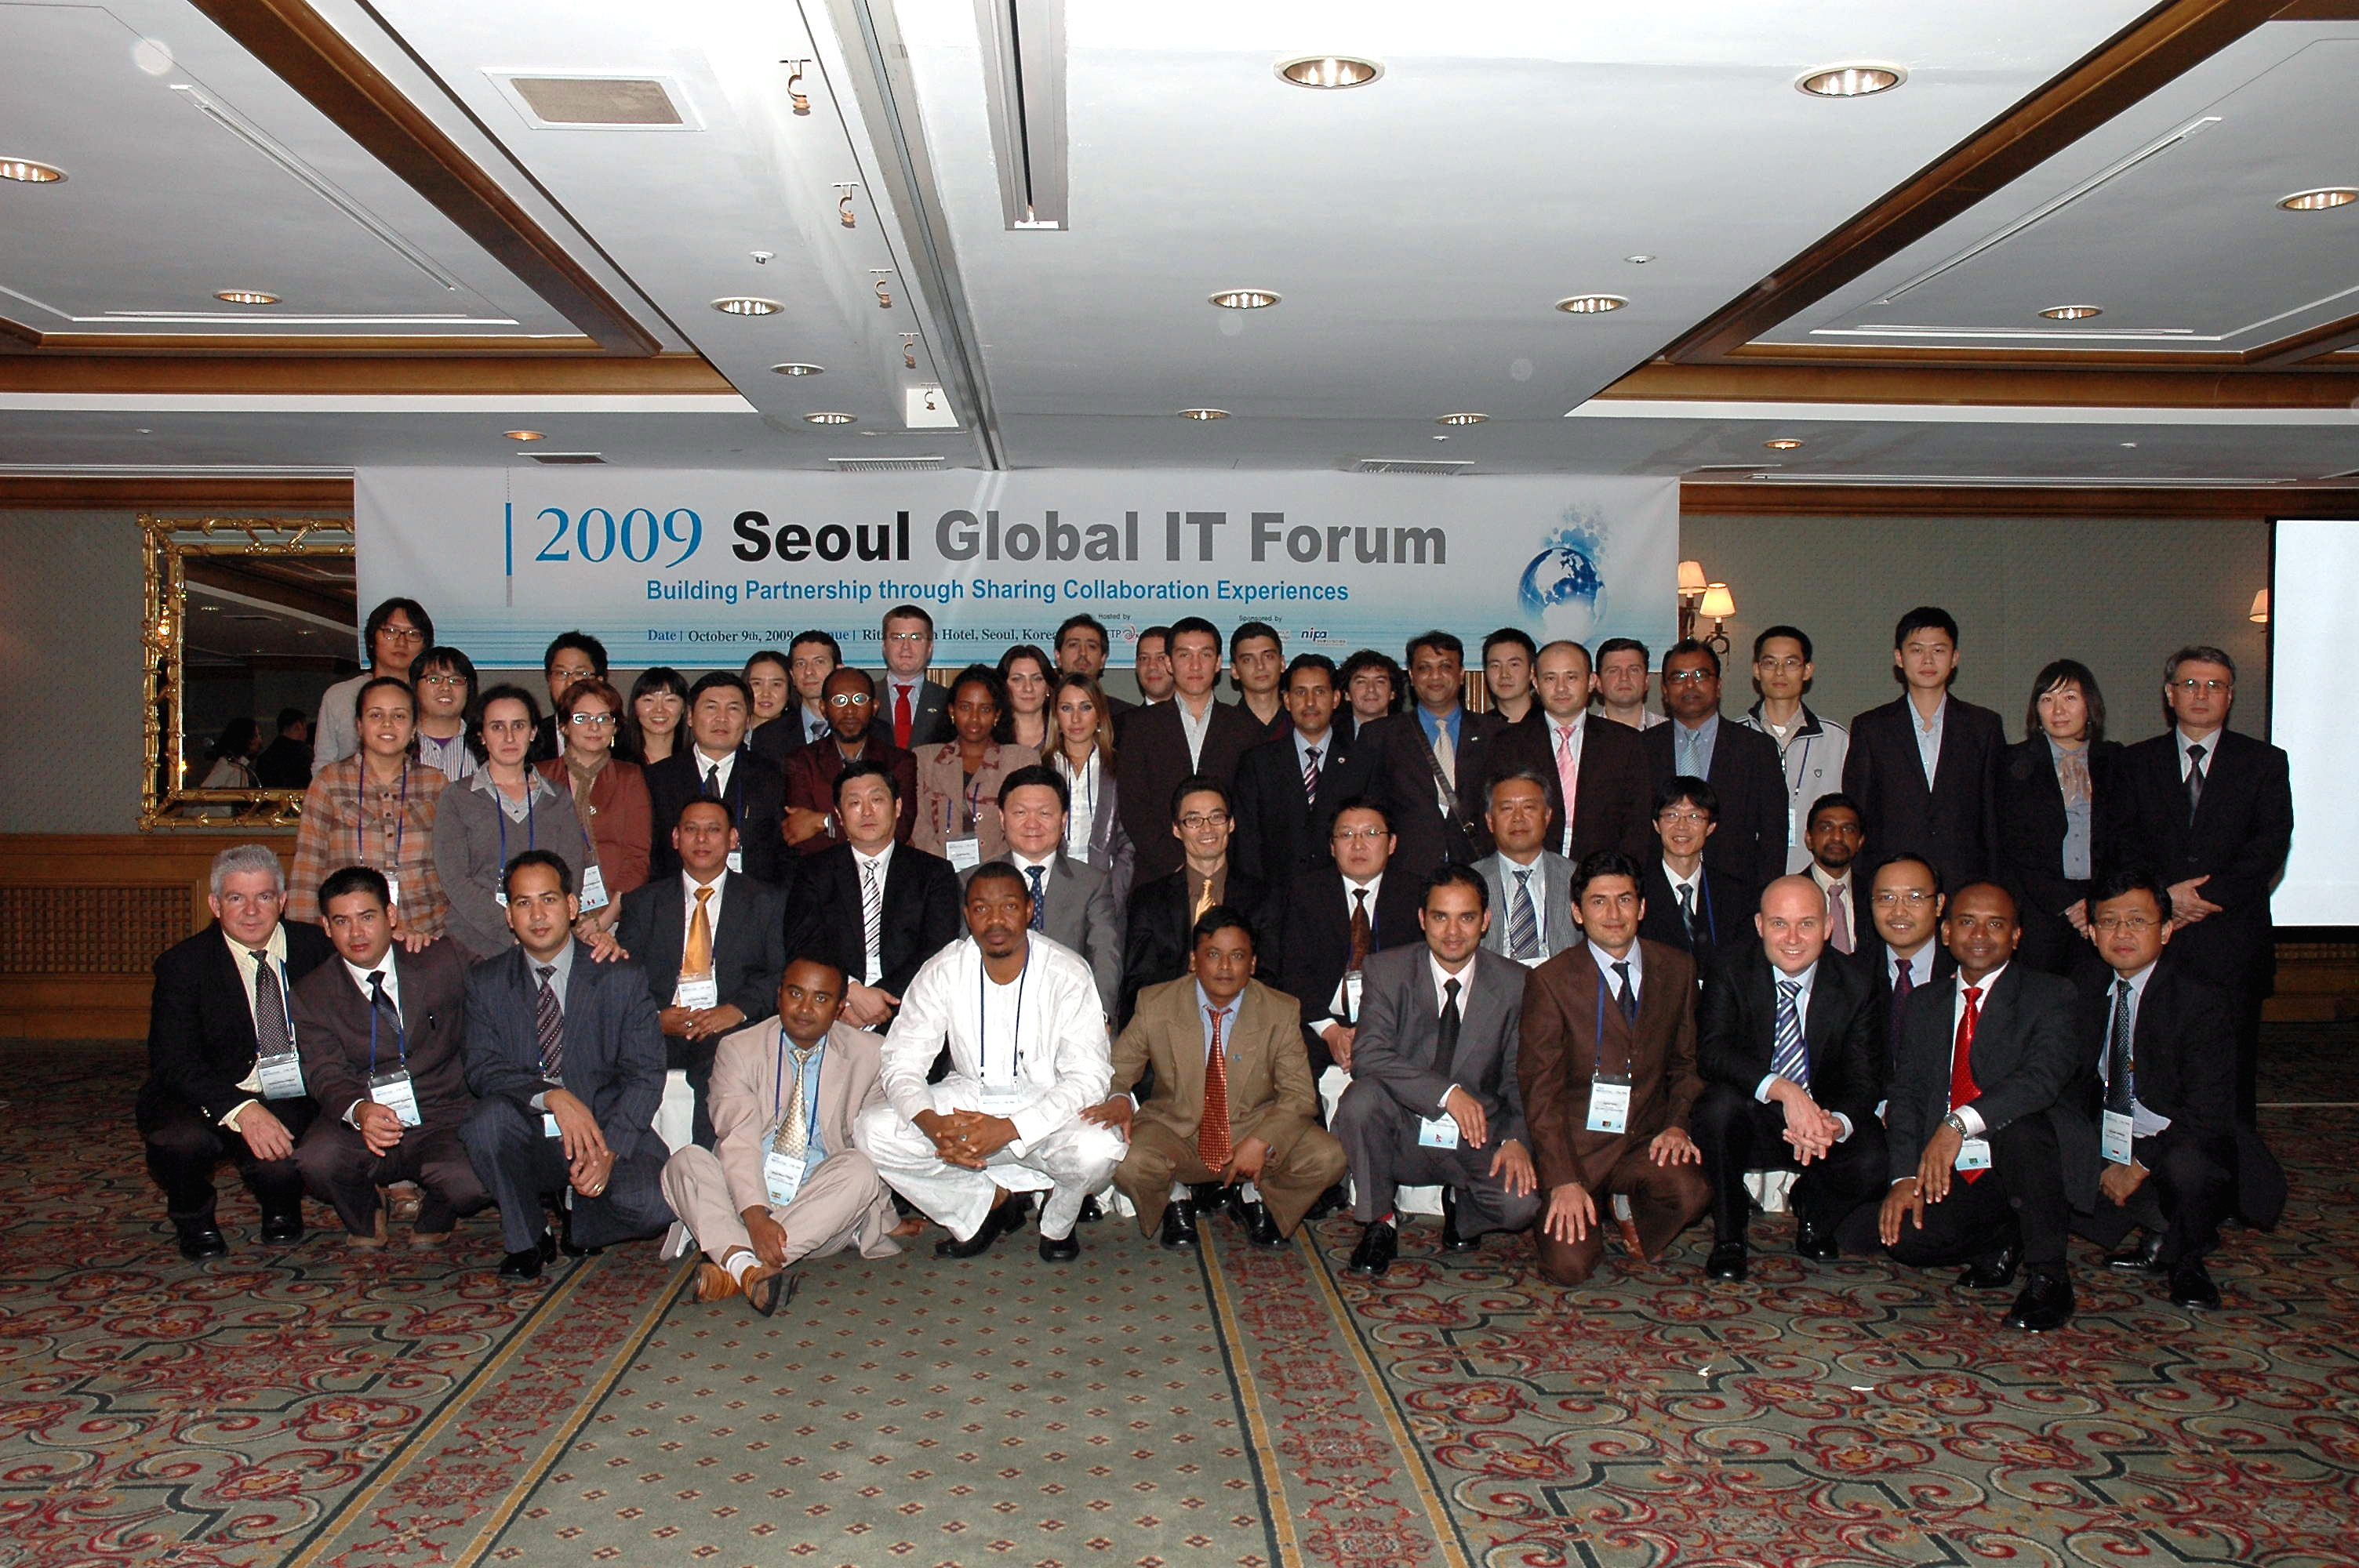 2009 Seoul Global IT Forum 개최(10/9) 이미지